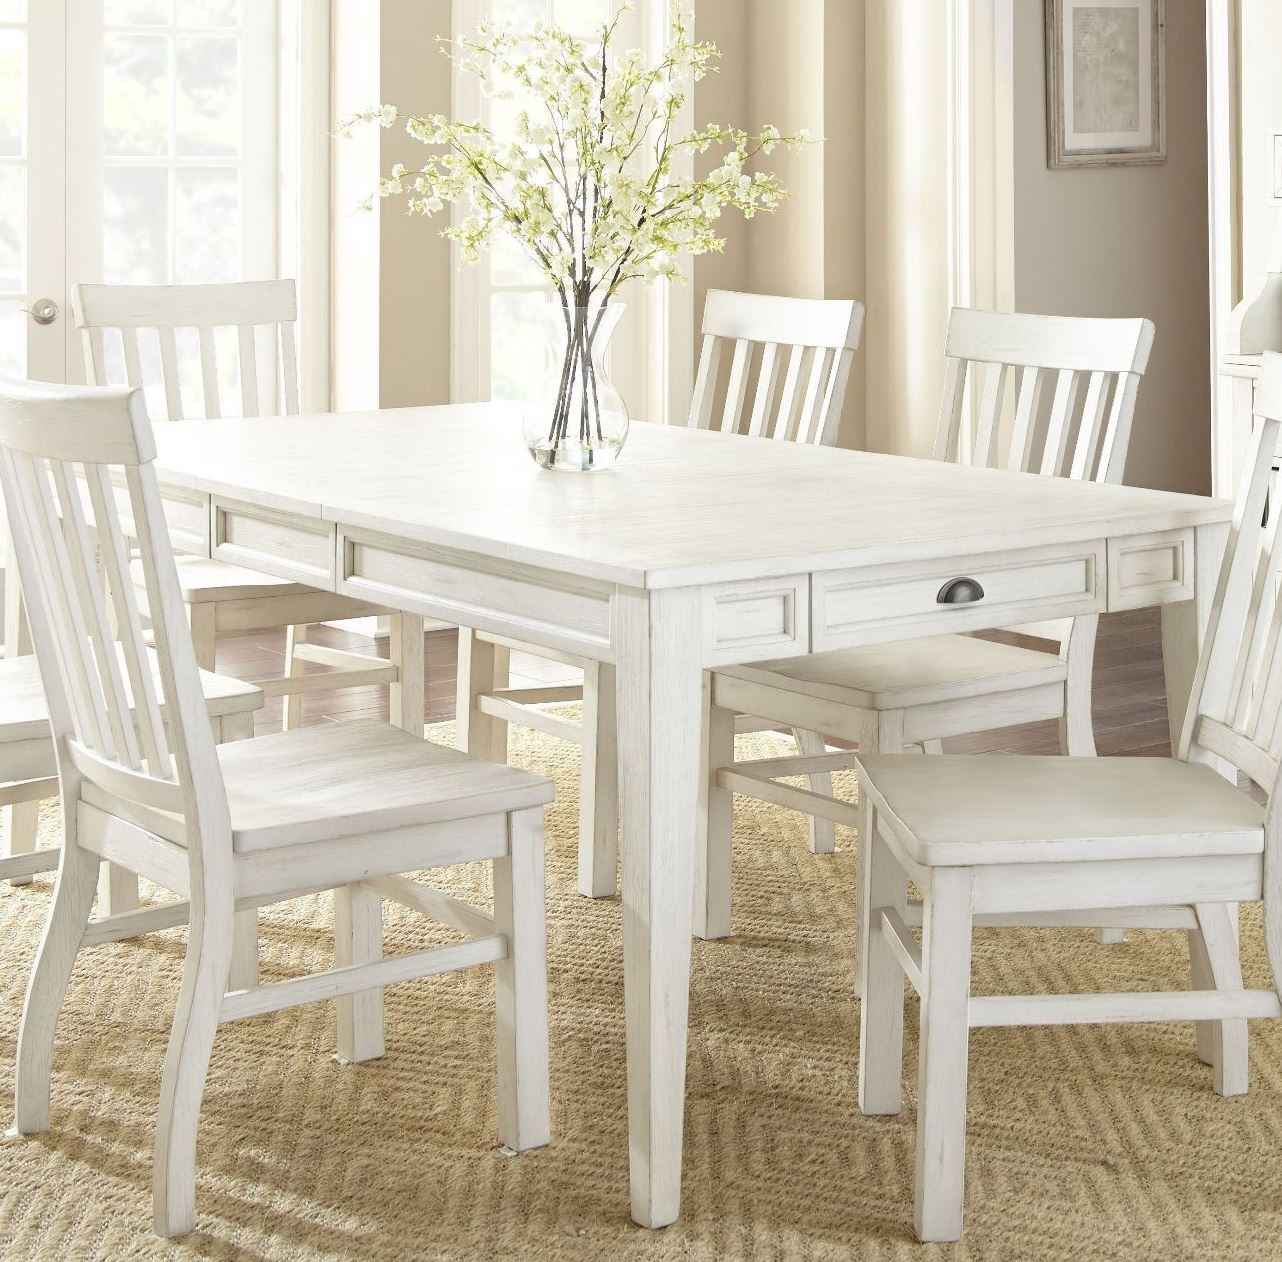 Rectangular Extendable Dining Table: Cayla Antique White Extendable Rectangular Dining Table